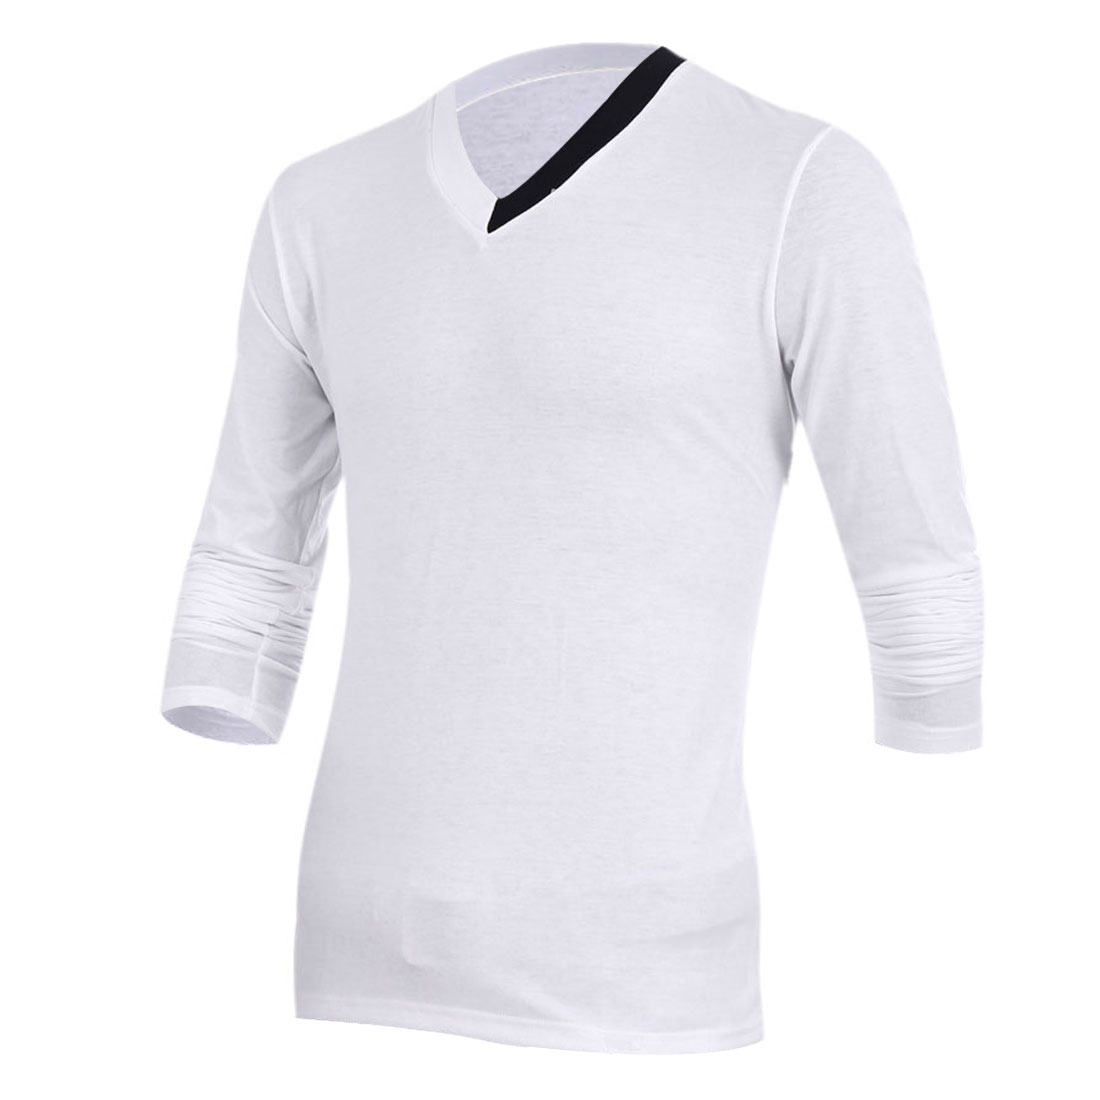 Mans New Fashion Splice Detail V Neck Long Sleeve White Spring Top Shirt M